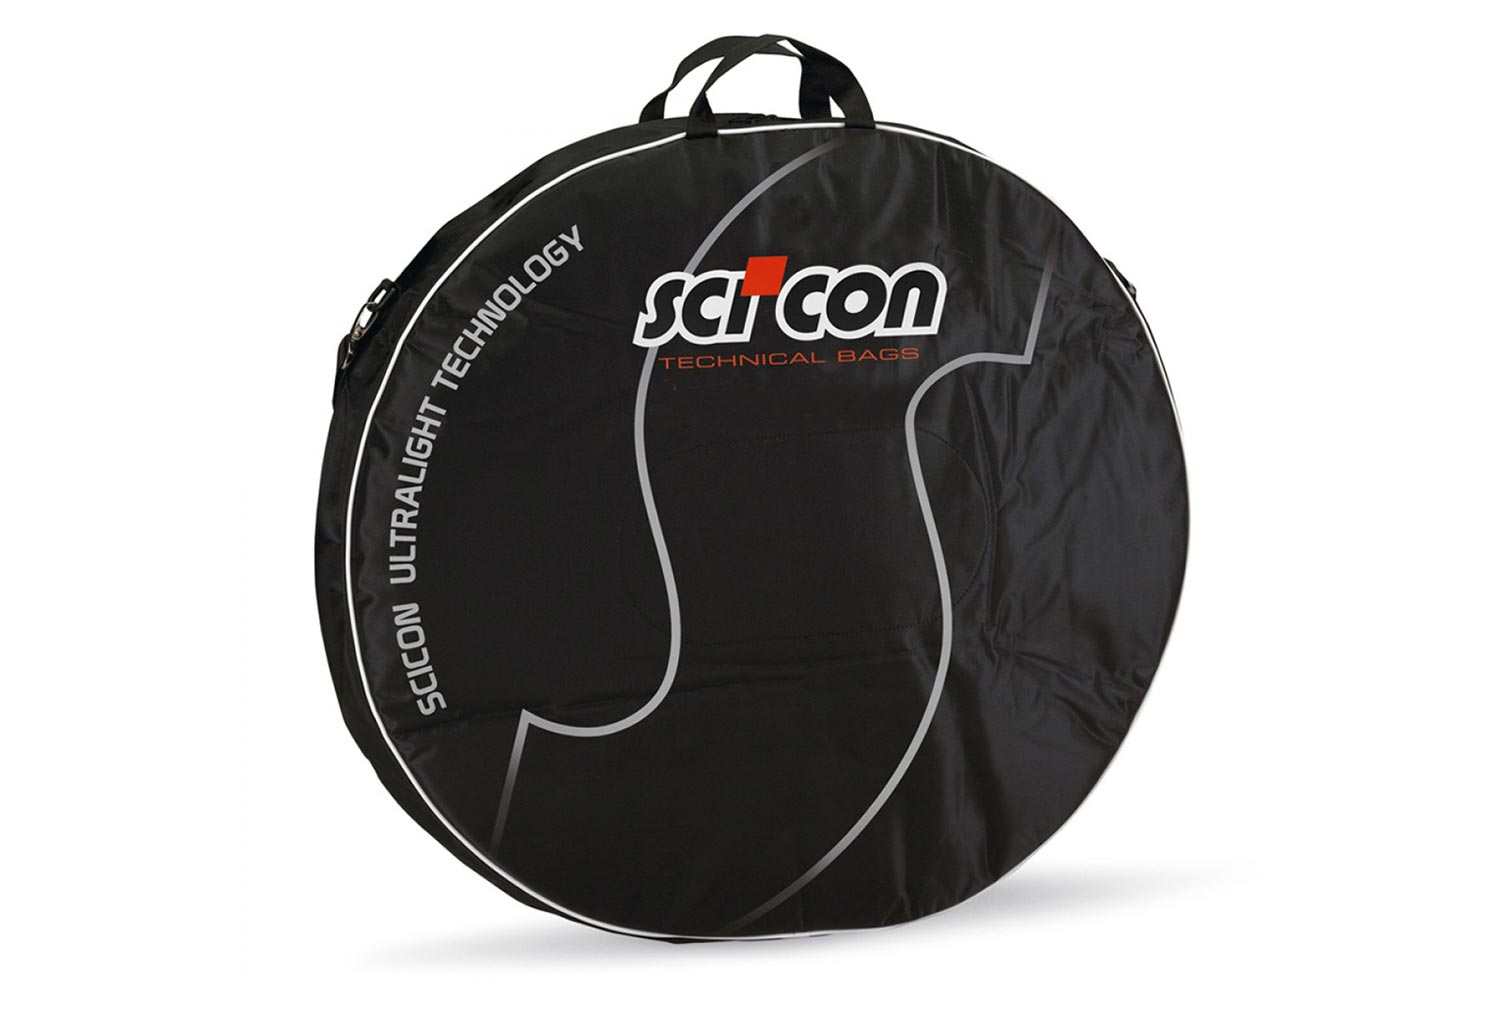 Scicon Padded Double Wheel Bag Black 26 27 5 700